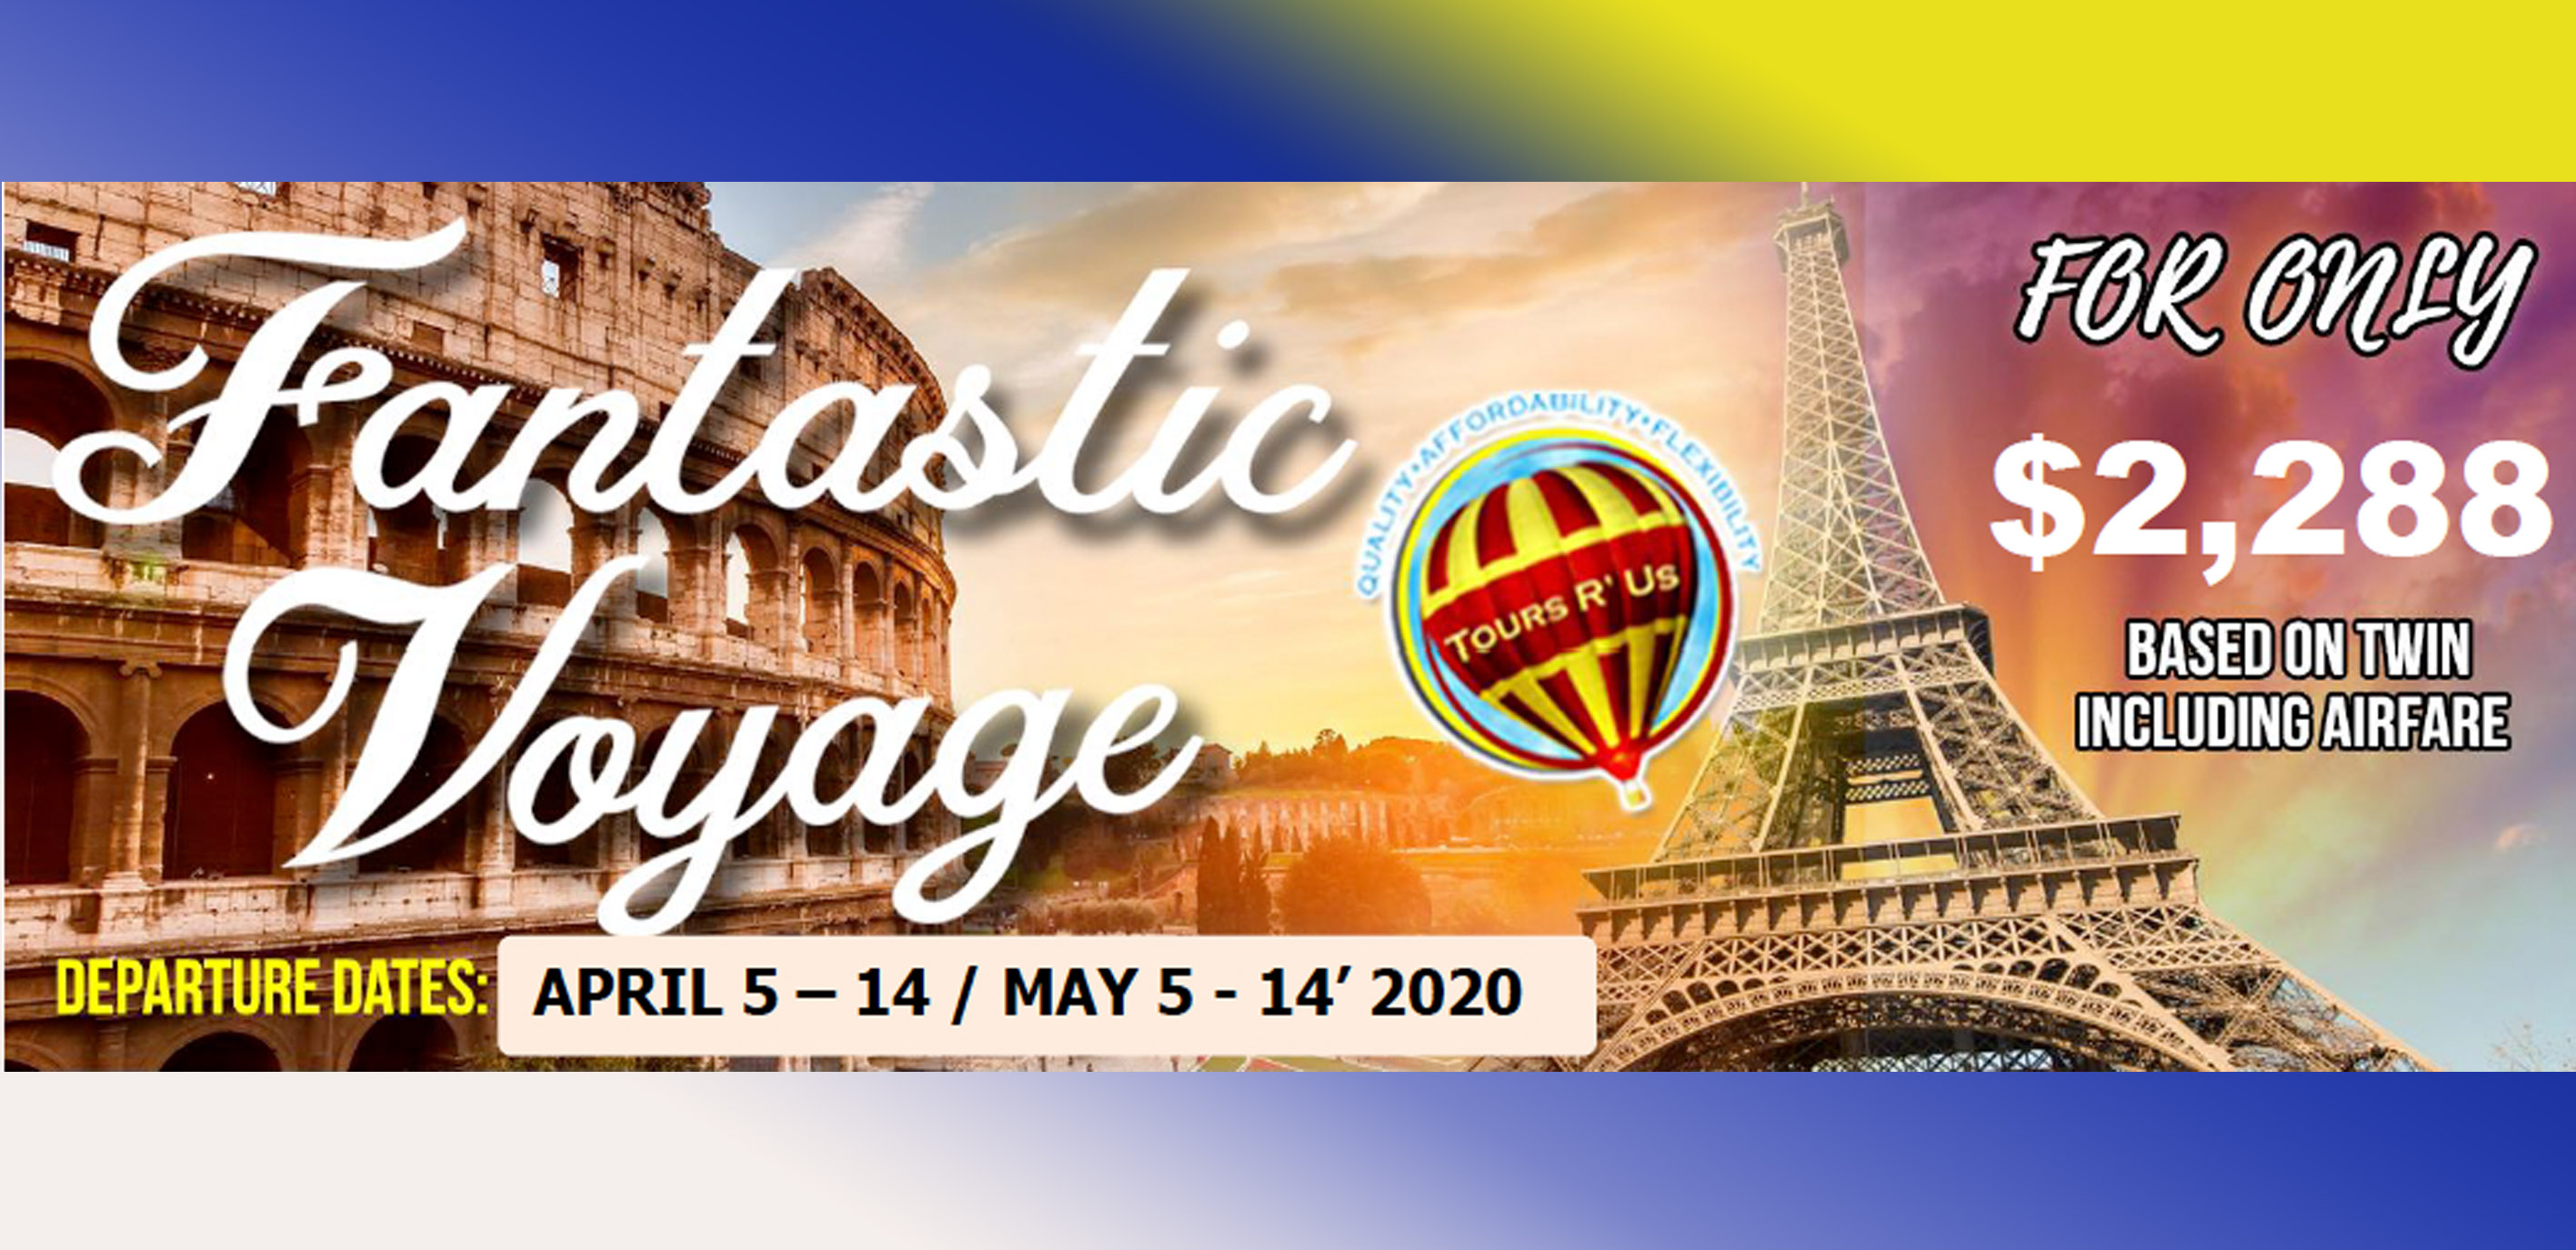 FANTASTIC VOYAGE APR-MAY DEPARTURES Featured Images 2020 February Packages